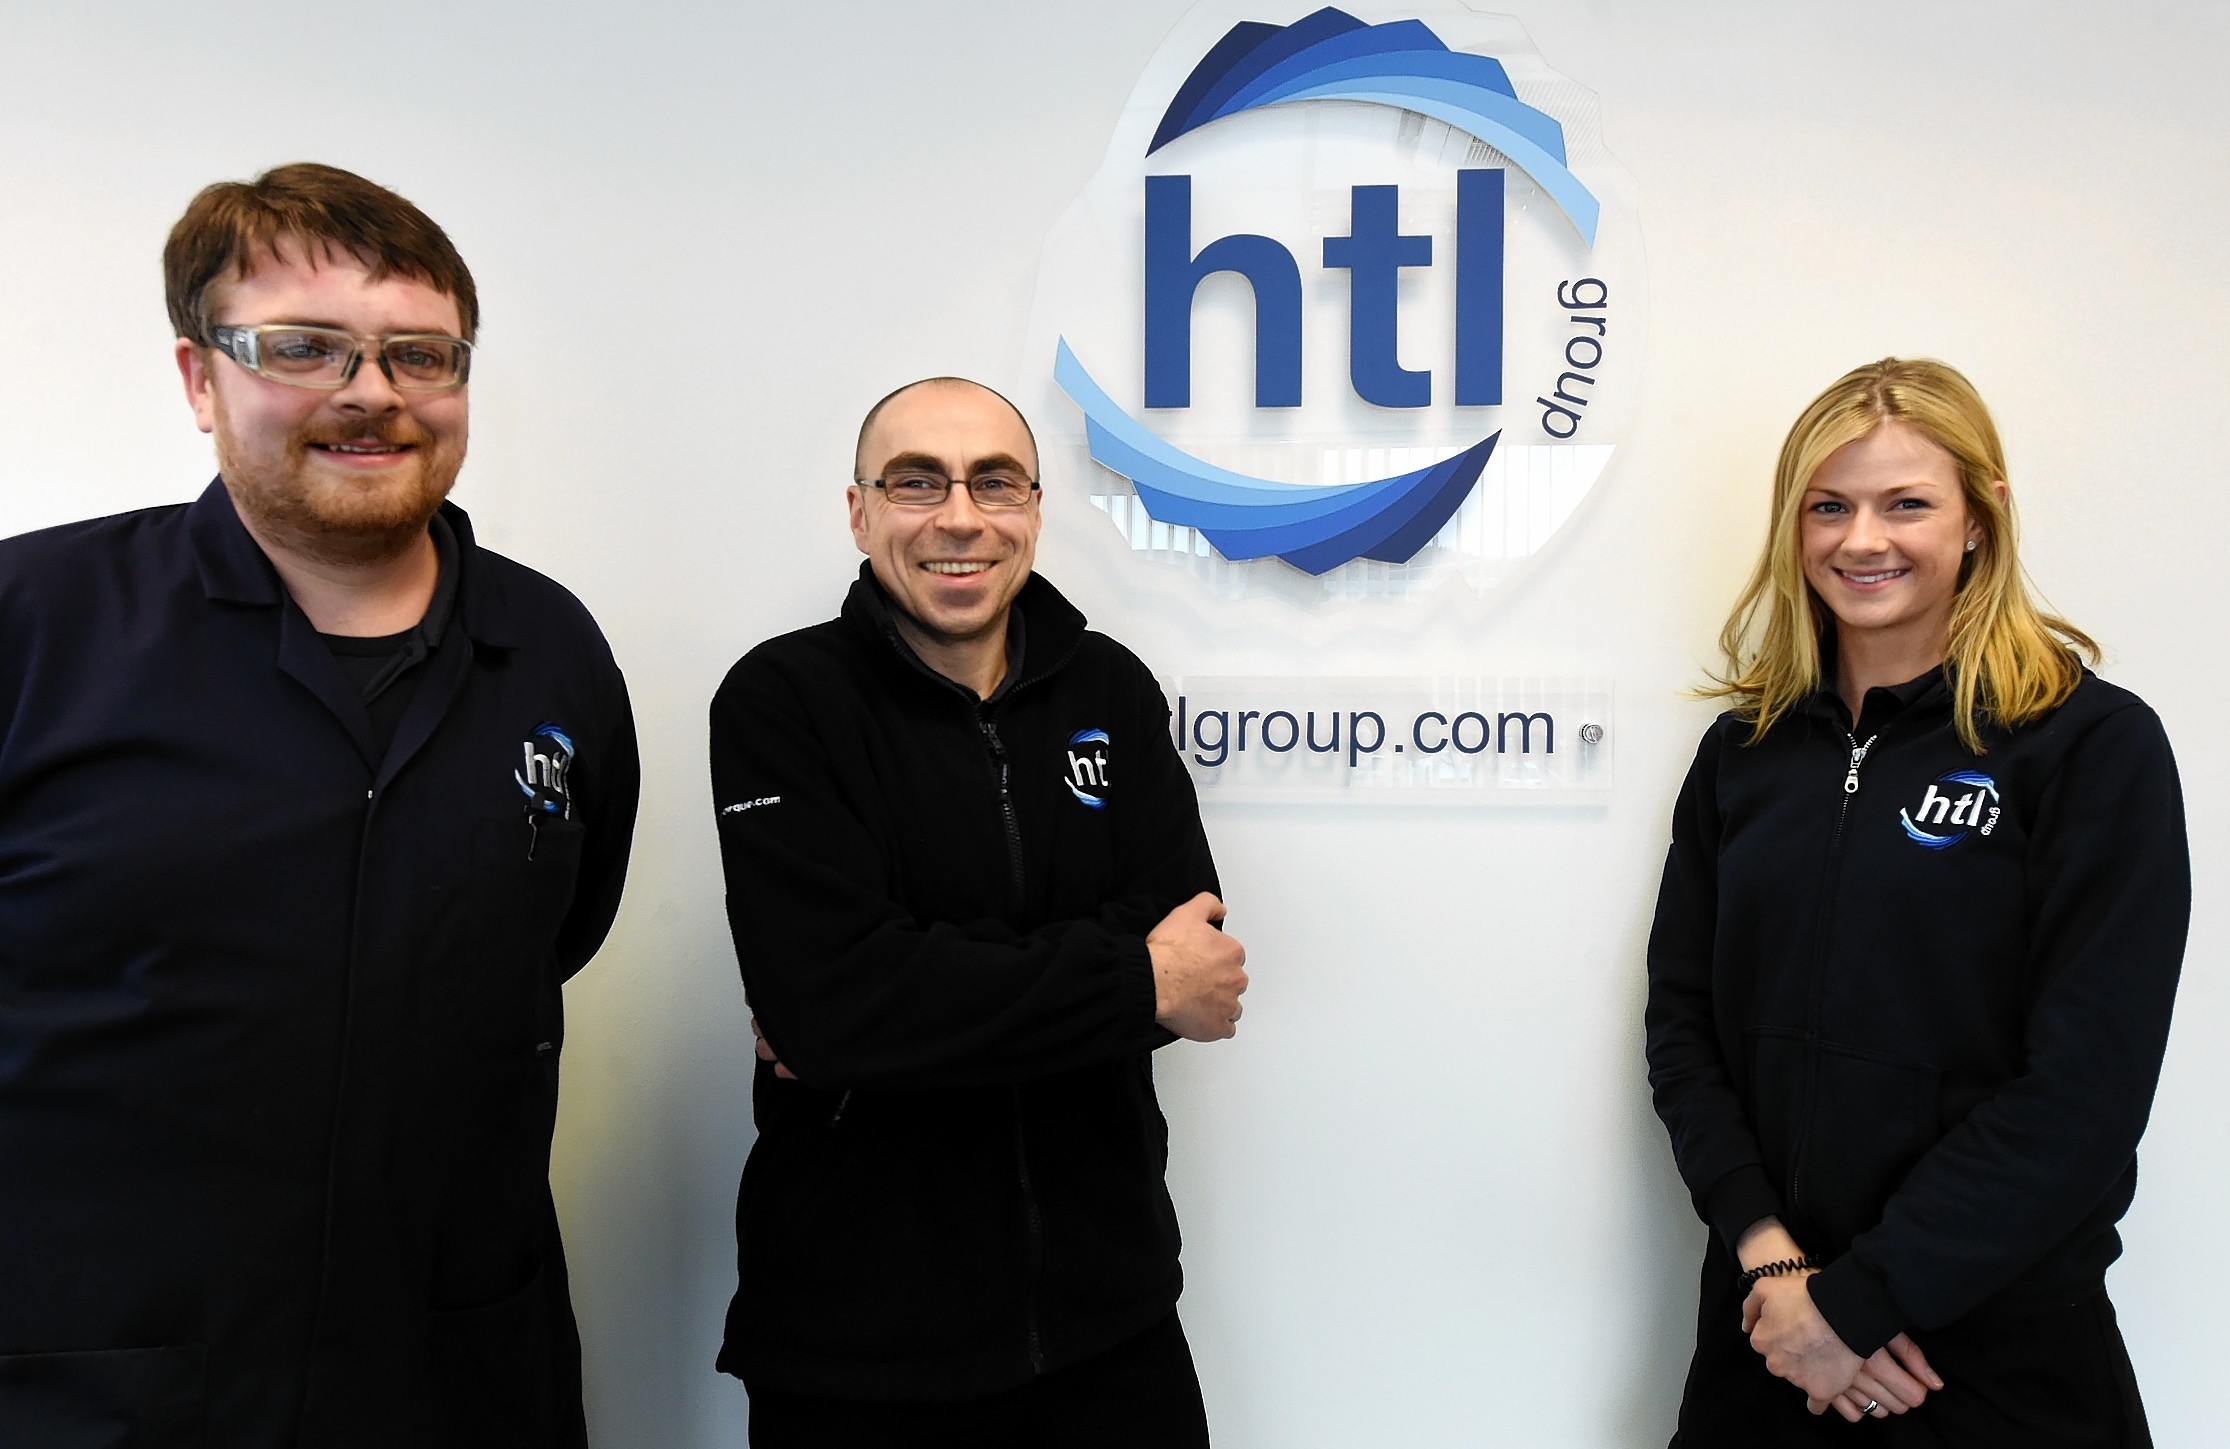 Apprentice Feature: HTL Group, Dyce, Aberdeen. In the picture are from left: James Beadles, Scott Ingram and Jo Donald.